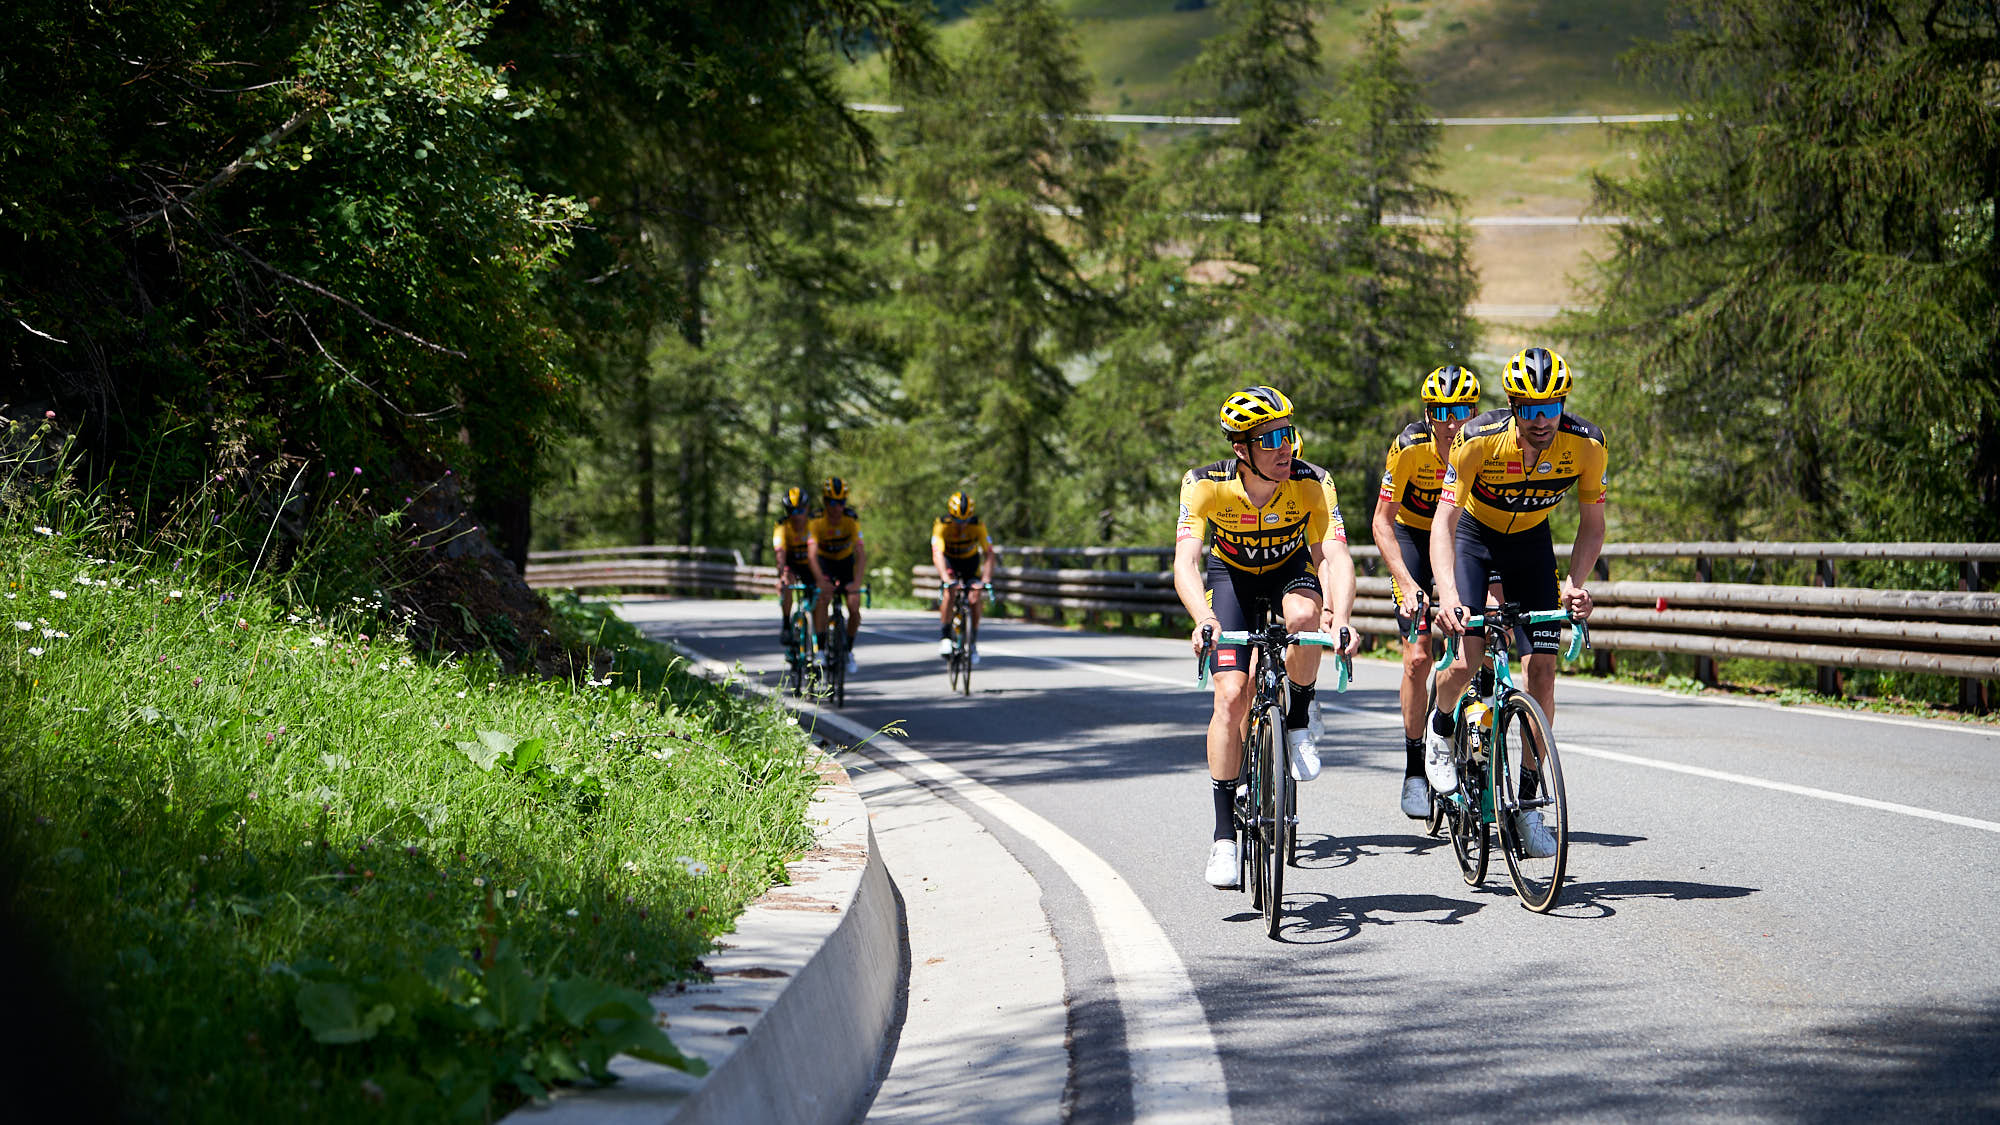 Tour de France cyclists training in the mountains